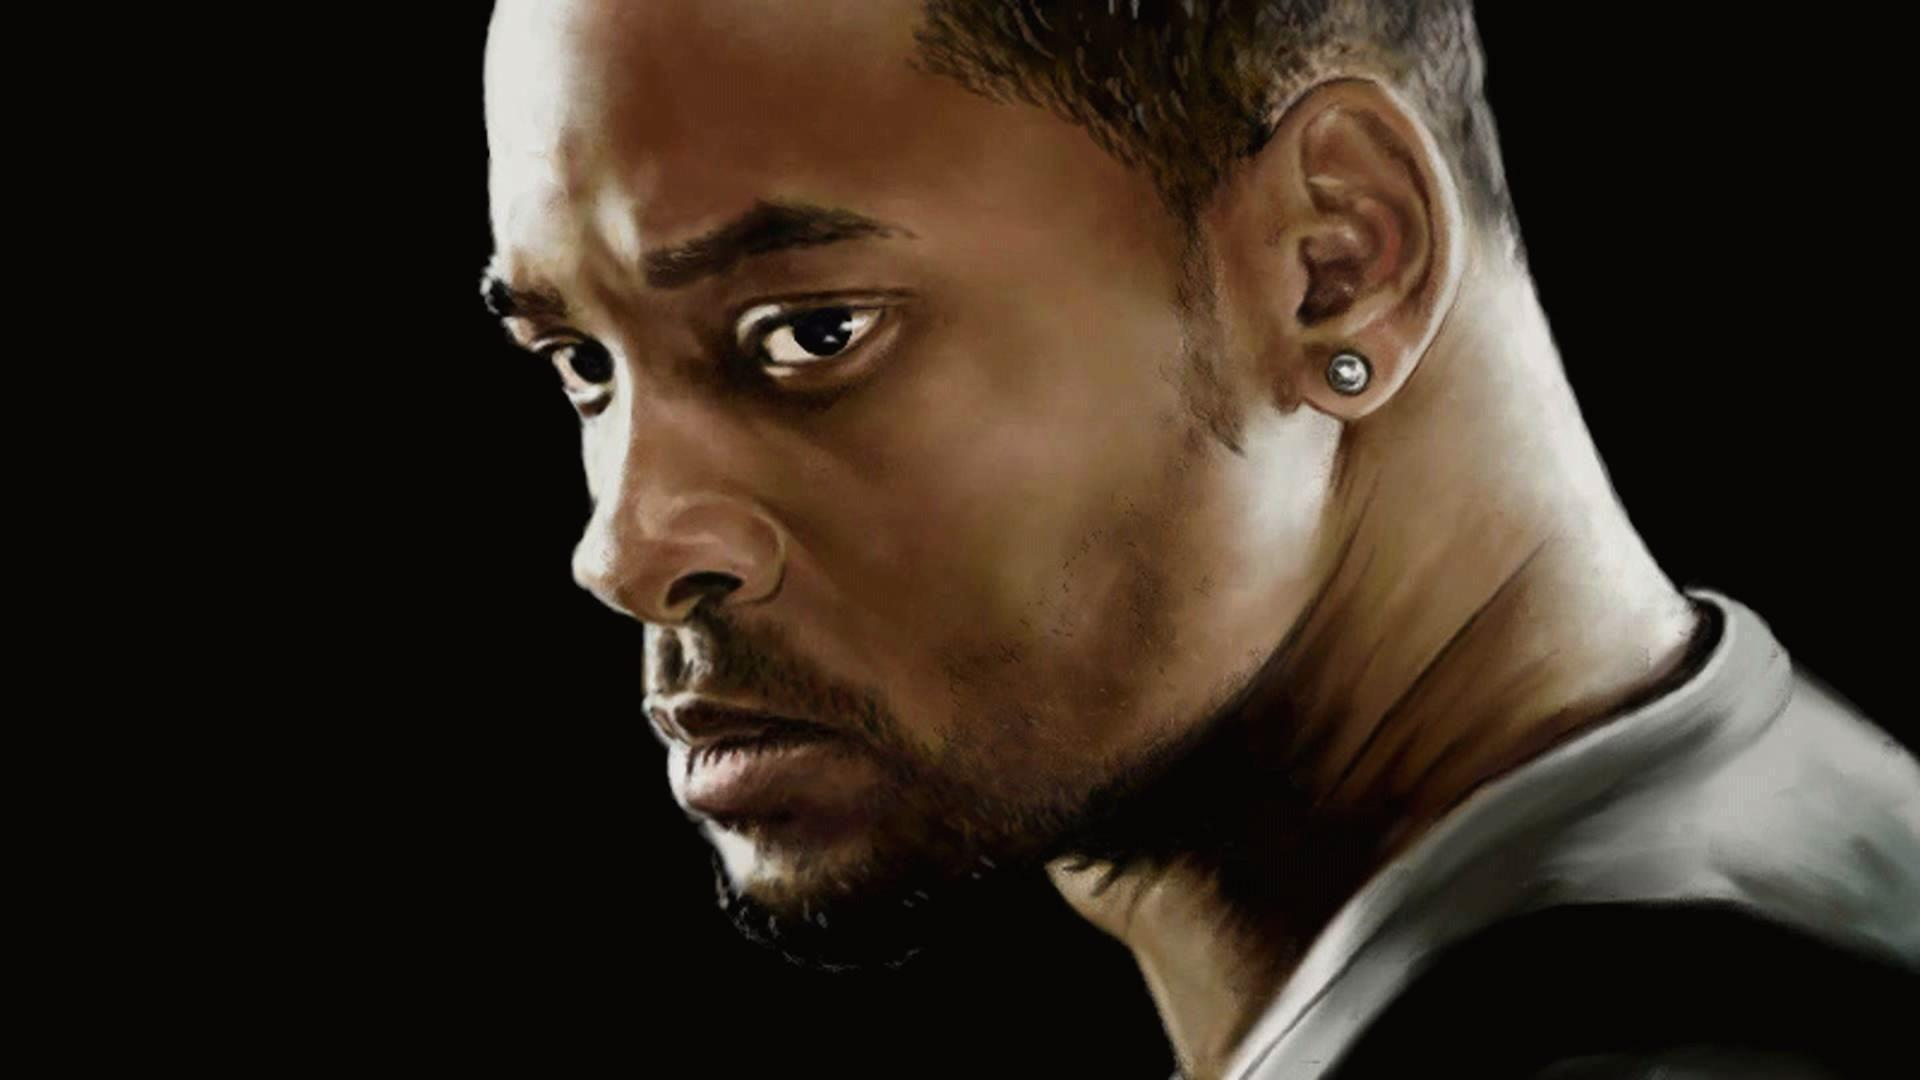 Will smith Animated Backgrounds